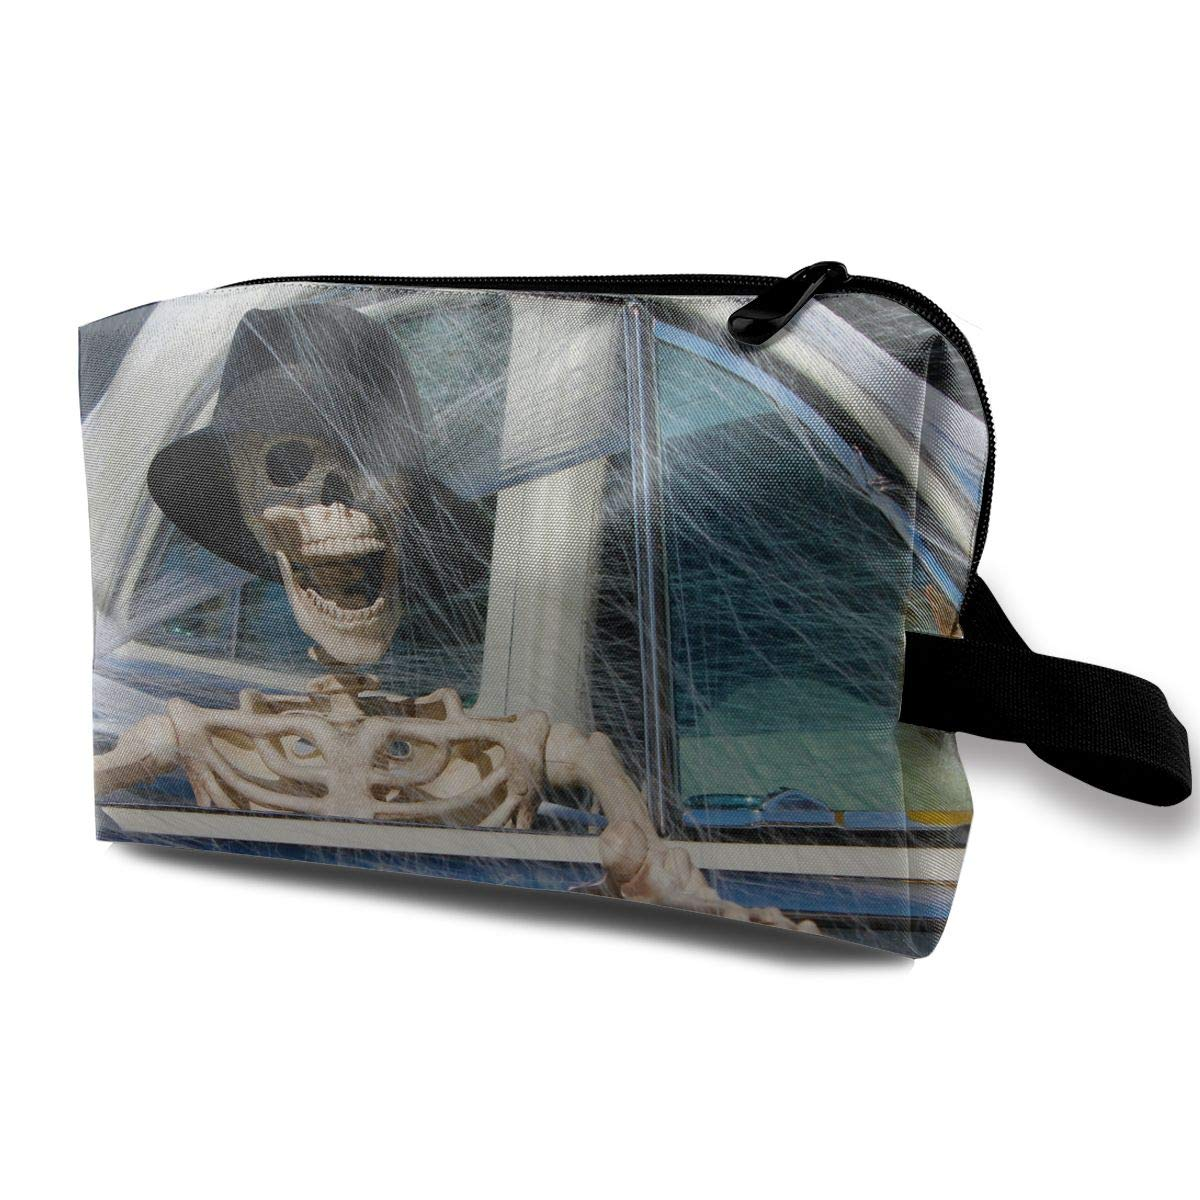 Scary Halloween Skull Skeleton Driving Spider Web Car Multi-function Travel Makeup Toiletry Coin Bag Case